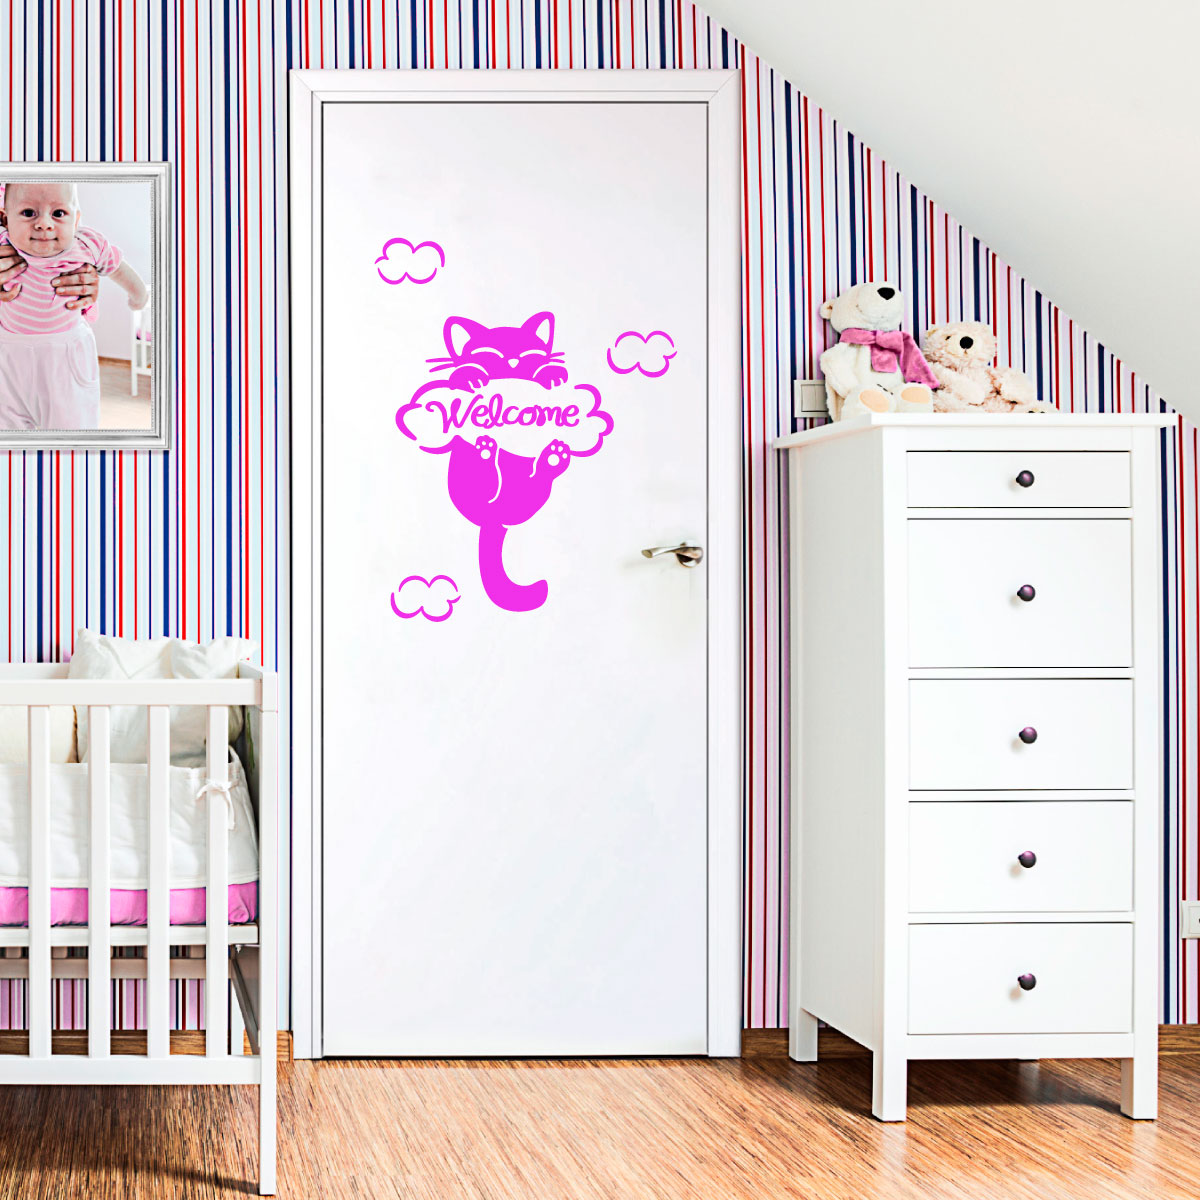 sticker le chat dans les nuages stickers chambre ado fille ambiance sticker. Black Bedroom Furniture Sets. Home Design Ideas